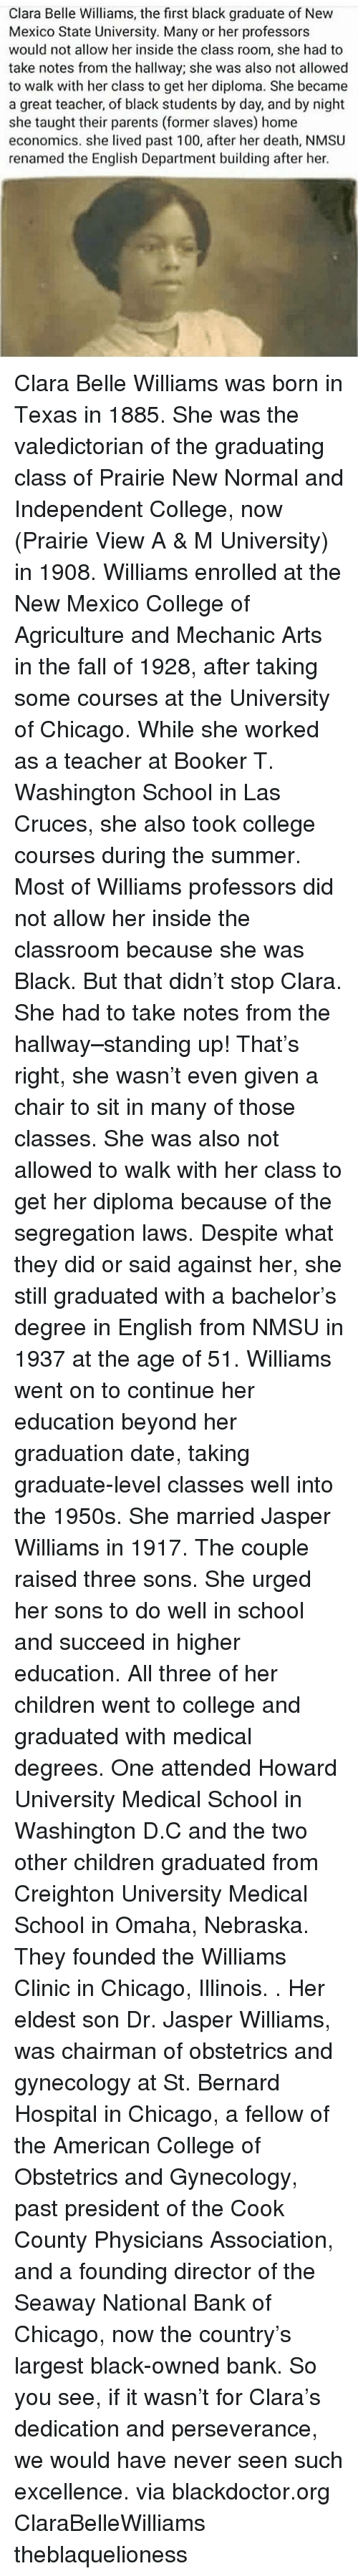 Anaconda, At-St, and Chicago: Clara Belle Williams, the first black graduate of New  Mexico State University. Many or her professors  would not allow her inside the class room, she had to  take notes from the hallway; she was also not allowed  to walk with her class to get her diploma. She became  a great teacher, of black students by day, and by night  she taught their parents (former slaves) home  economics. she lived past 100, after her death, NMSU  renamed the English Department building after her. Clara Belle Williams was born in Texas in 1885. She was the valedictorian of the graduating class of Prairie New Normal and Independent College, now (Prairie View A & M University) in 1908. Williams enrolled at the New Mexico College of Agriculture and Mechanic Arts in the fall of 1928, after taking some courses at the University of Chicago. While she worked as a teacher at Booker T. Washington School in Las Cruces, she also took college courses during the summer. Most of Williams professors did not allow her inside the classroom because she was Black. But that didn't stop Clara. She had to take notes from the hallway–standing up! That's right, she wasn't even given a chair to sit in many of those classes. She was also not allowed to walk with her class to get her diploma because of the segregation laws. Despite what they did or said against her, she still graduated with a bachelor's degree in English from NMSU in 1937 at the age of 51. Williams went on to continue her education beyond her graduation date, taking graduate-level classes well into the 1950s. She married Jasper Williams in 1917. The couple raised three sons. She urged her sons to do well in school and succeed in higher education. All three of her children went to college and graduated with medical degrees. One attended Howard University Medical School in Washington D.C and the two other children graduated from Creighton University Medical School in Omaha, Nebraska. They founded the Williams Clinic in Chicago, Illinois. . Her eldest son Dr. Jasper Williams, was chairman of obstetrics and gynecology at St. Bernard Hospital in Chicago, a fellow of the American College of Obstetrics and Gynecology, past president of the Cook County Physicians Association, and a founding director of the Seaway National Bank of Chicago, now the country's largest black-owned bank. So you see, if it wasn't for Clara's dedication and perseverance, we would have never seen such excellence. via blackdoctor.org ClaraBelleWilliams theblaquelioness